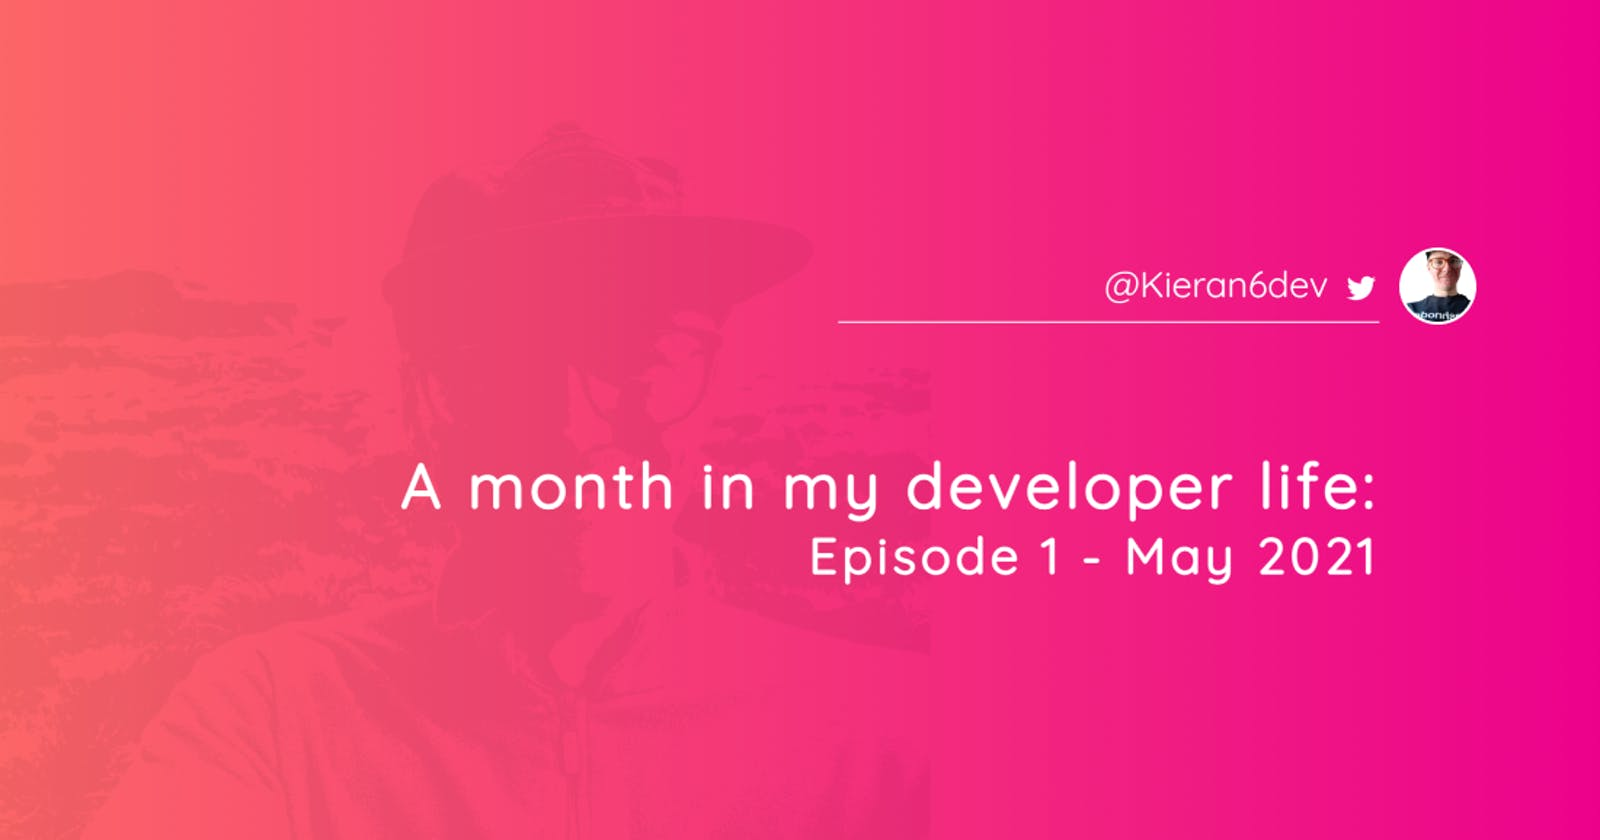 A month in my developer life: Episode 1 - May 2021